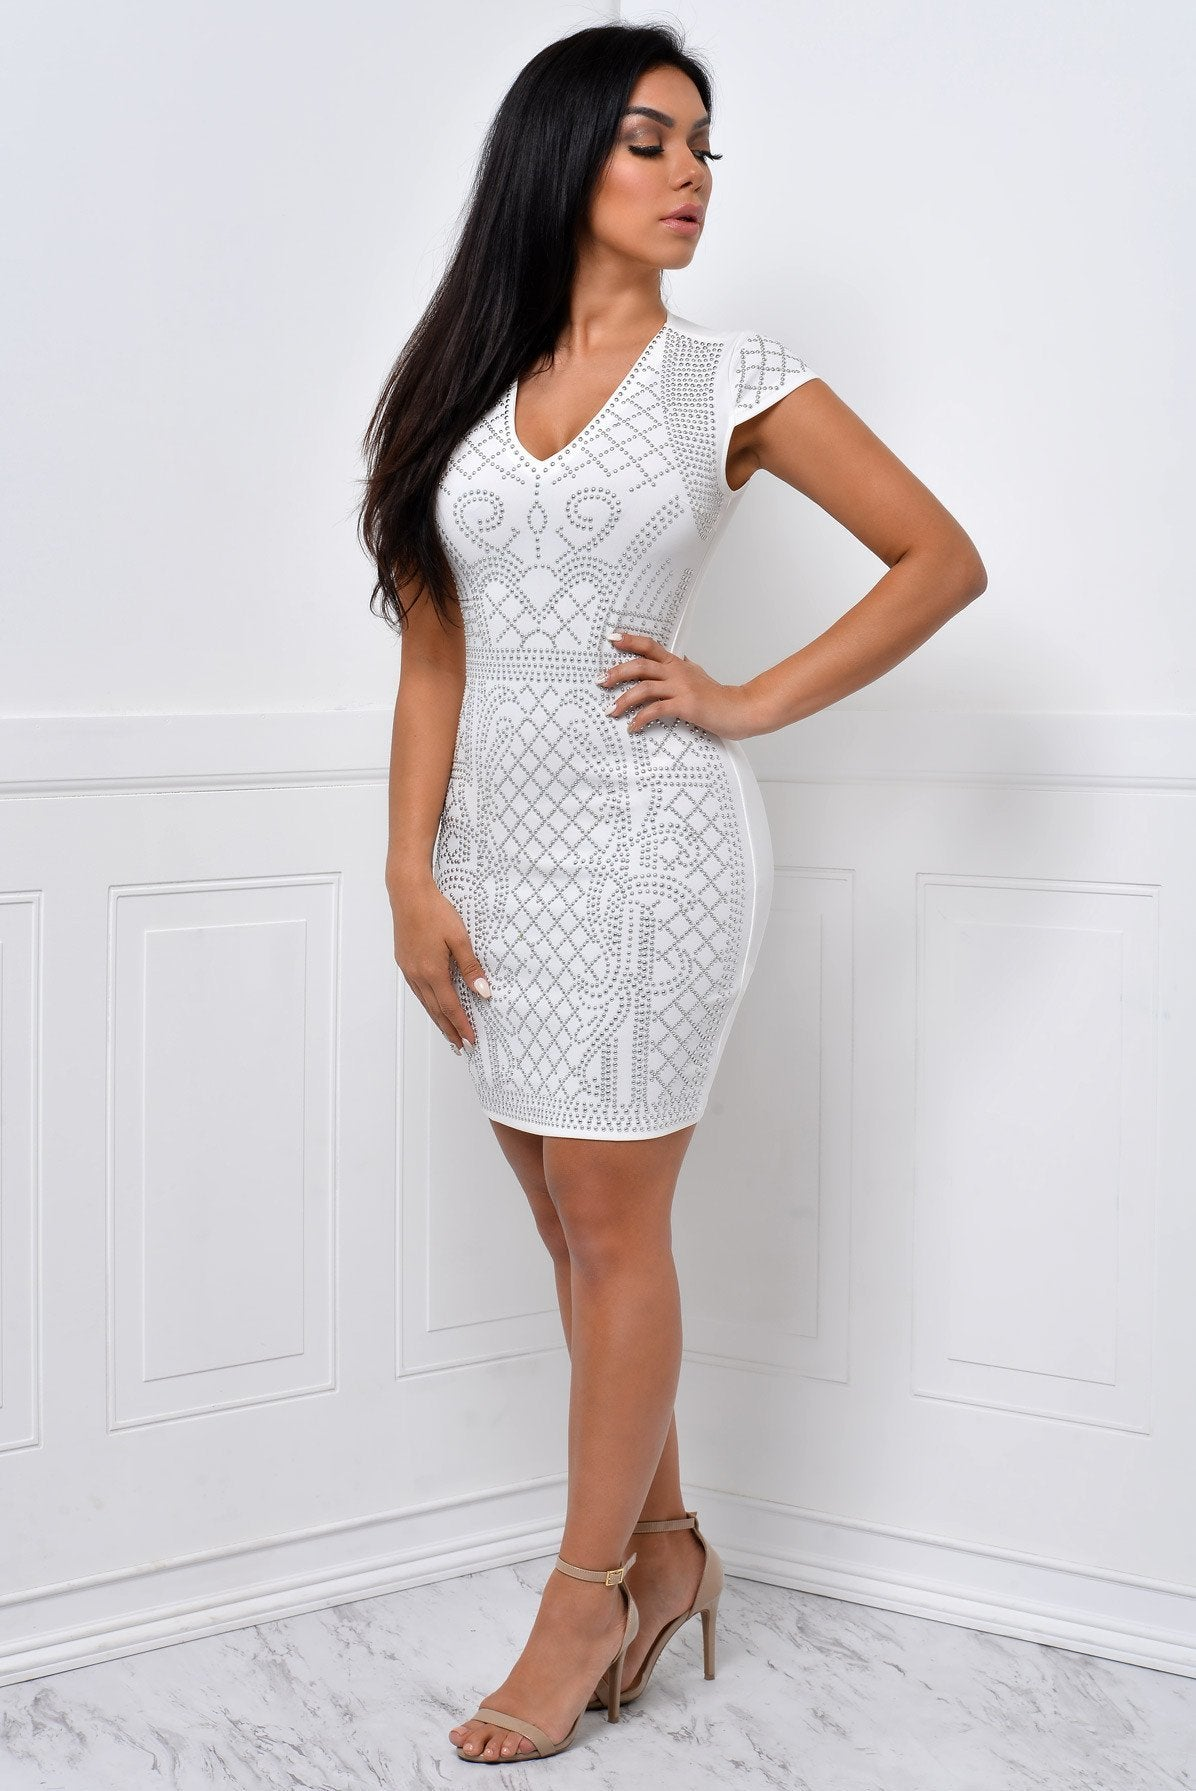 You Will Never Know White Dress - Fashion Effect Store  - 4